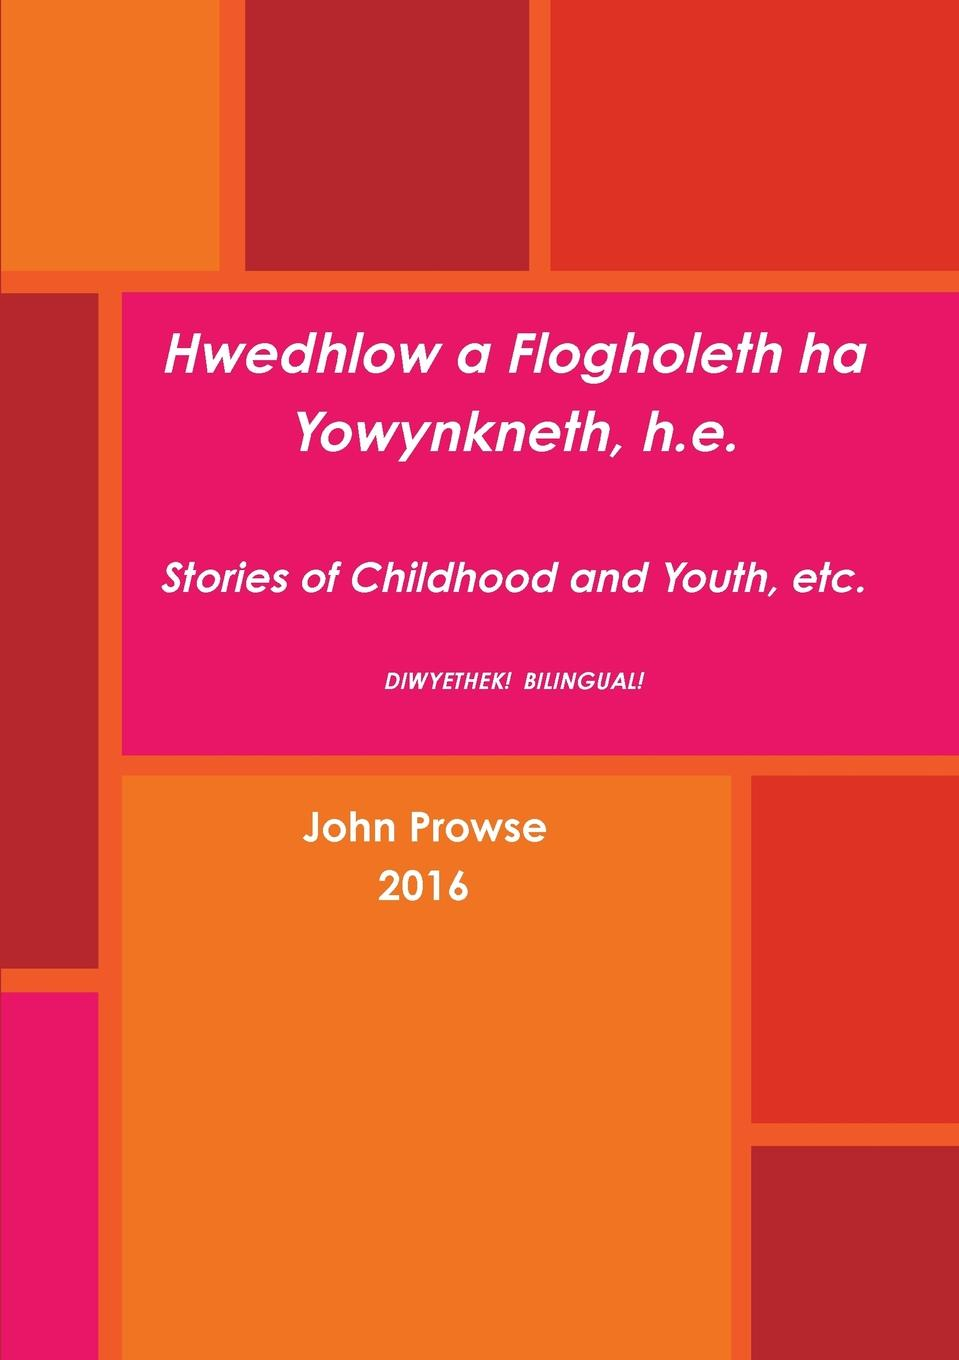 John Prowse Hwedhlow a Flogholeth ha Yowynkneth, h.e. a ha a ha hunting high and low the early alternate mixes